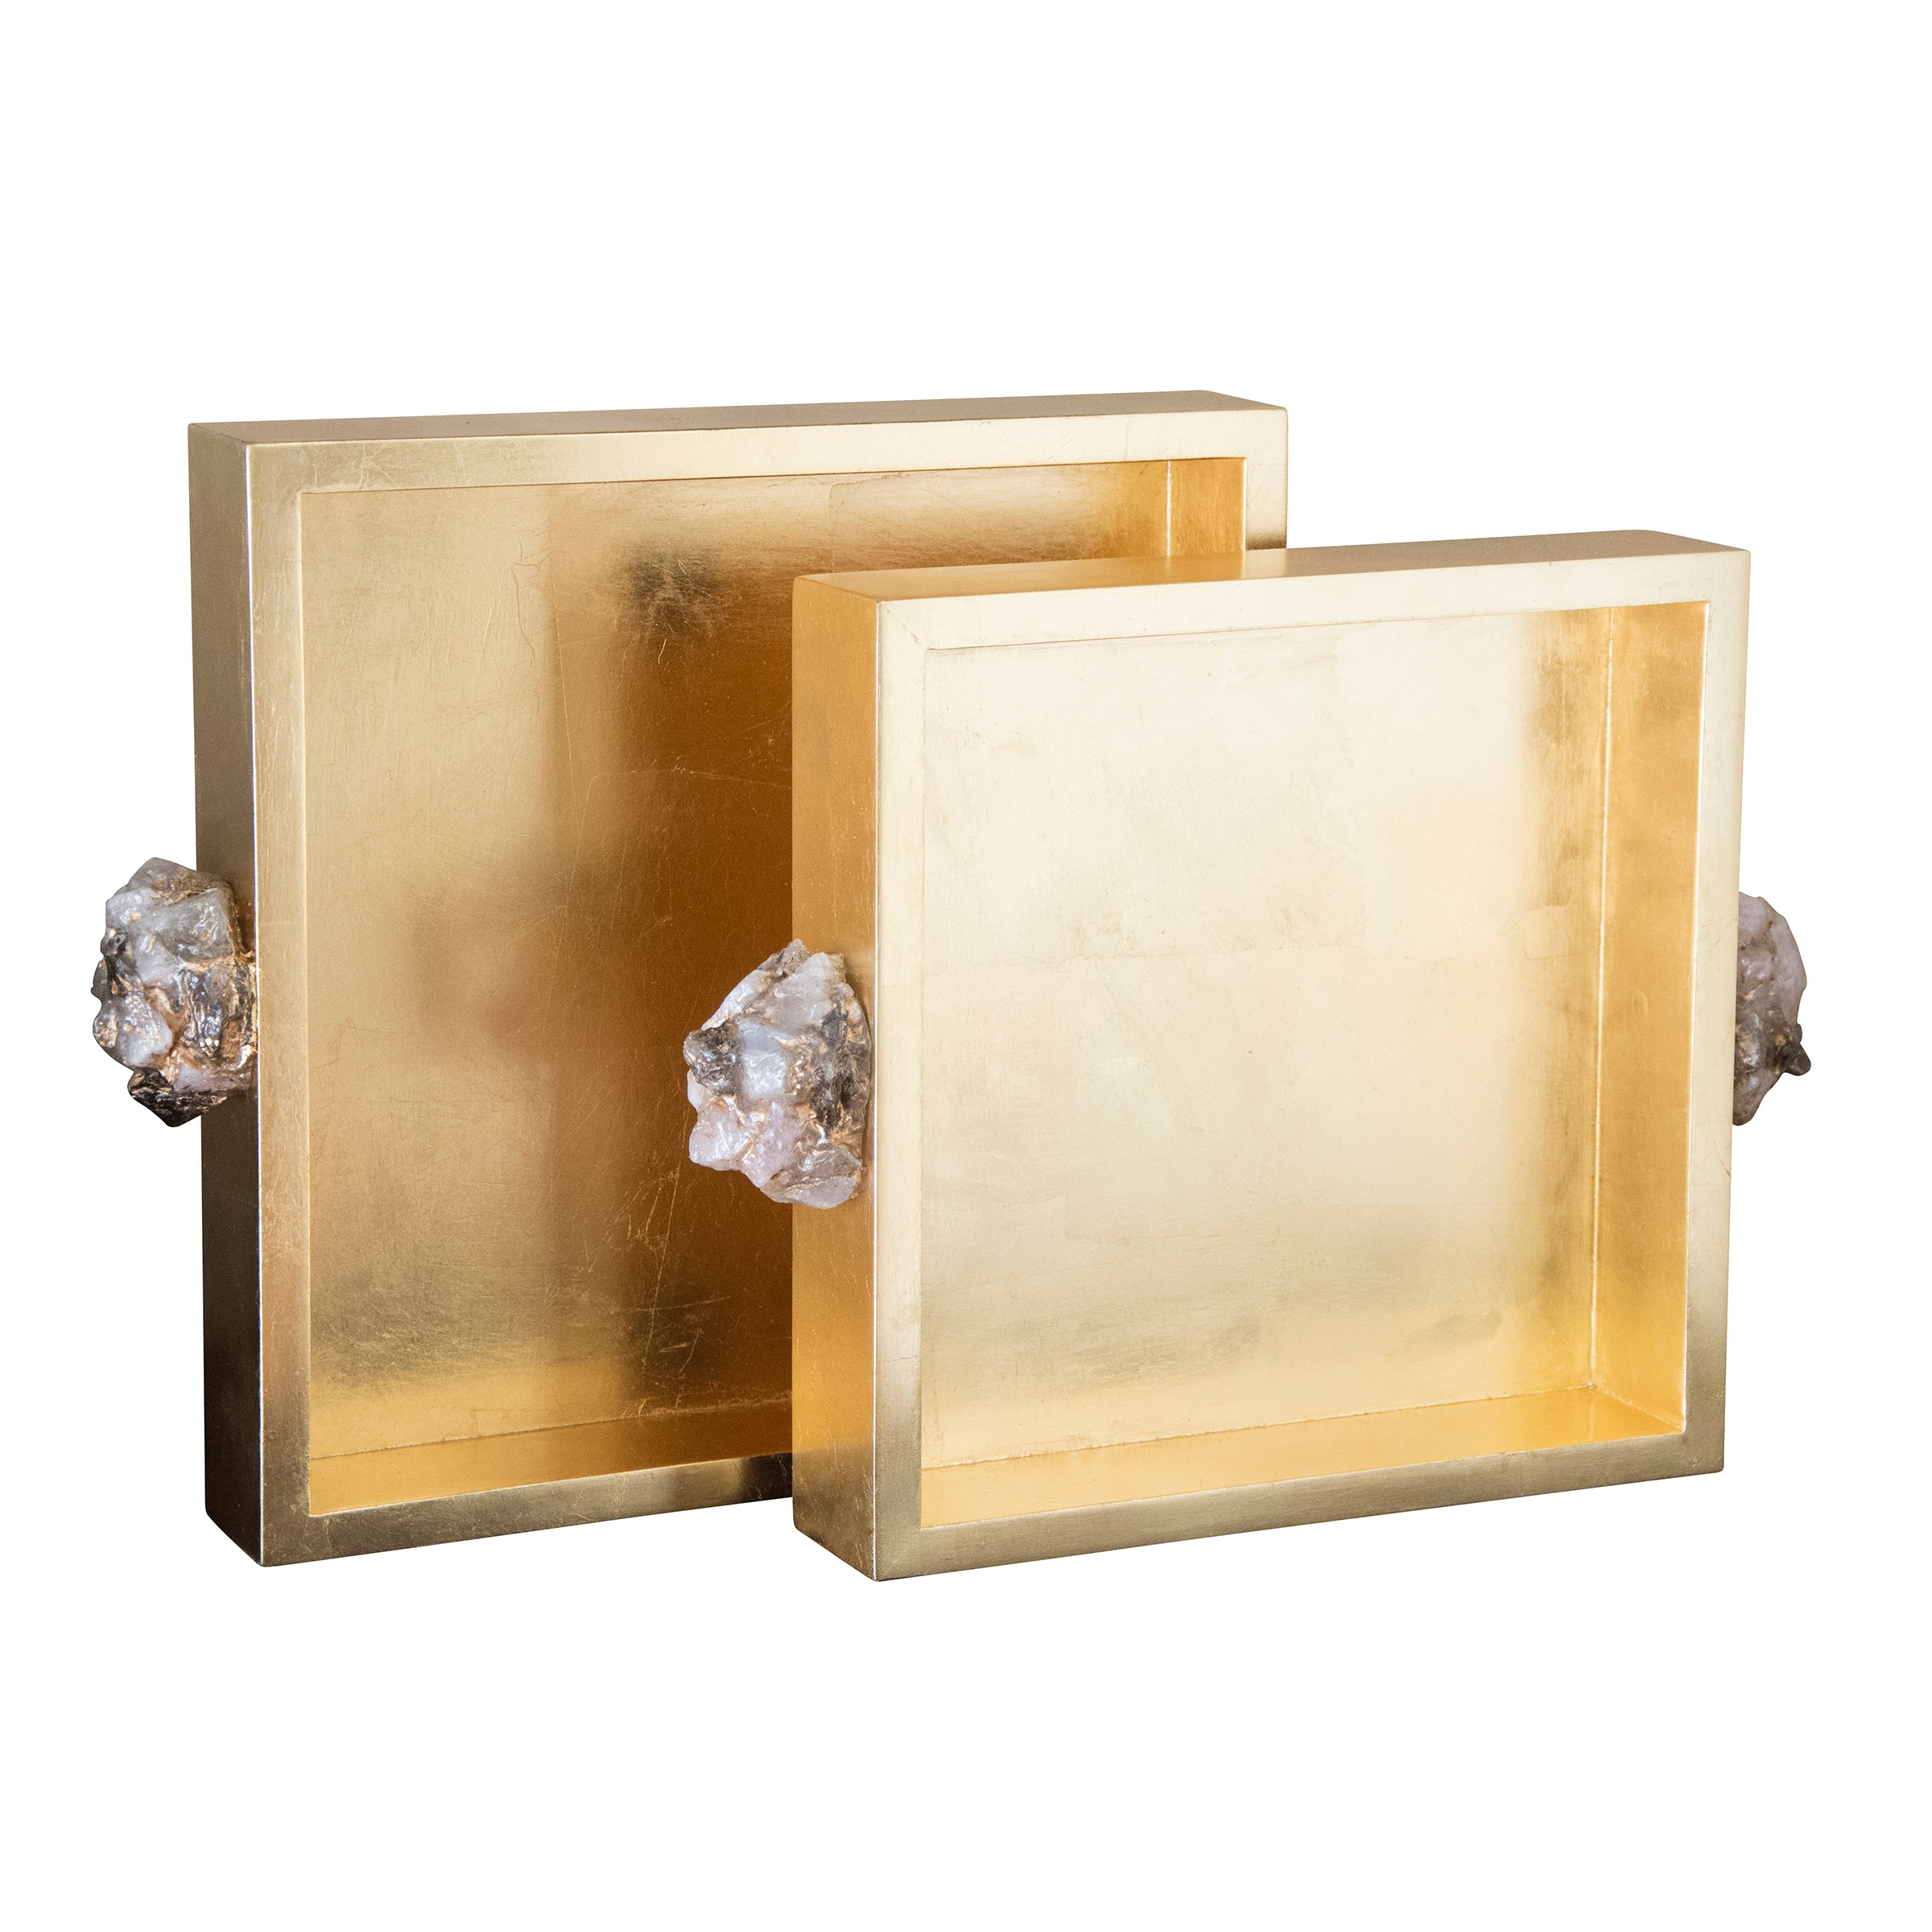 Astoria Quartz Square Trays [Set of 2] - Couture Lamps